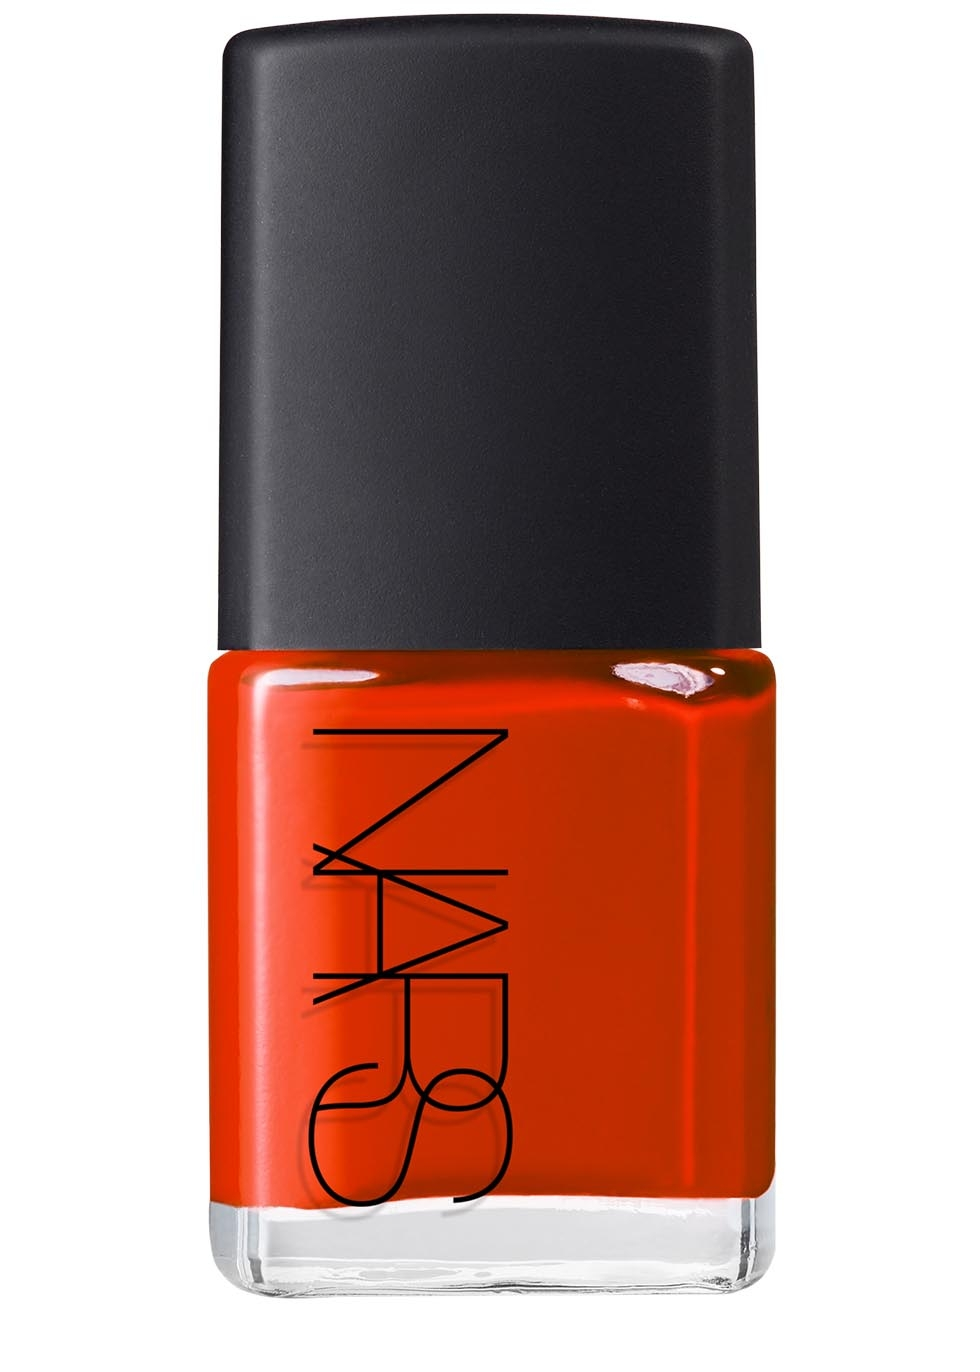 NARS nail lacquer in Hunger, £15